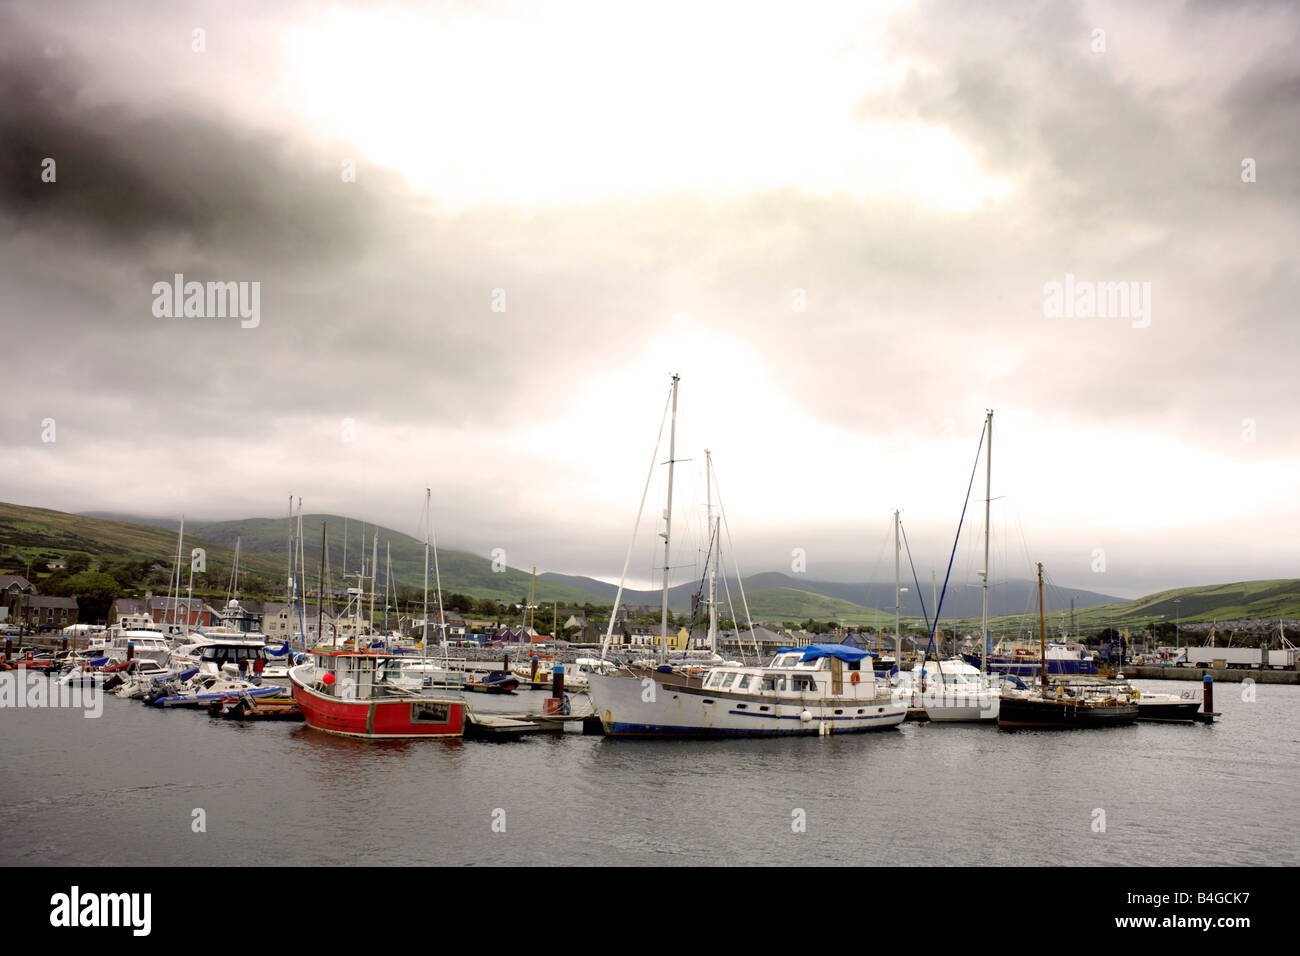 Boats in Dingle Harbour on a stormy day,  Republic of Ireland, - Stock Image